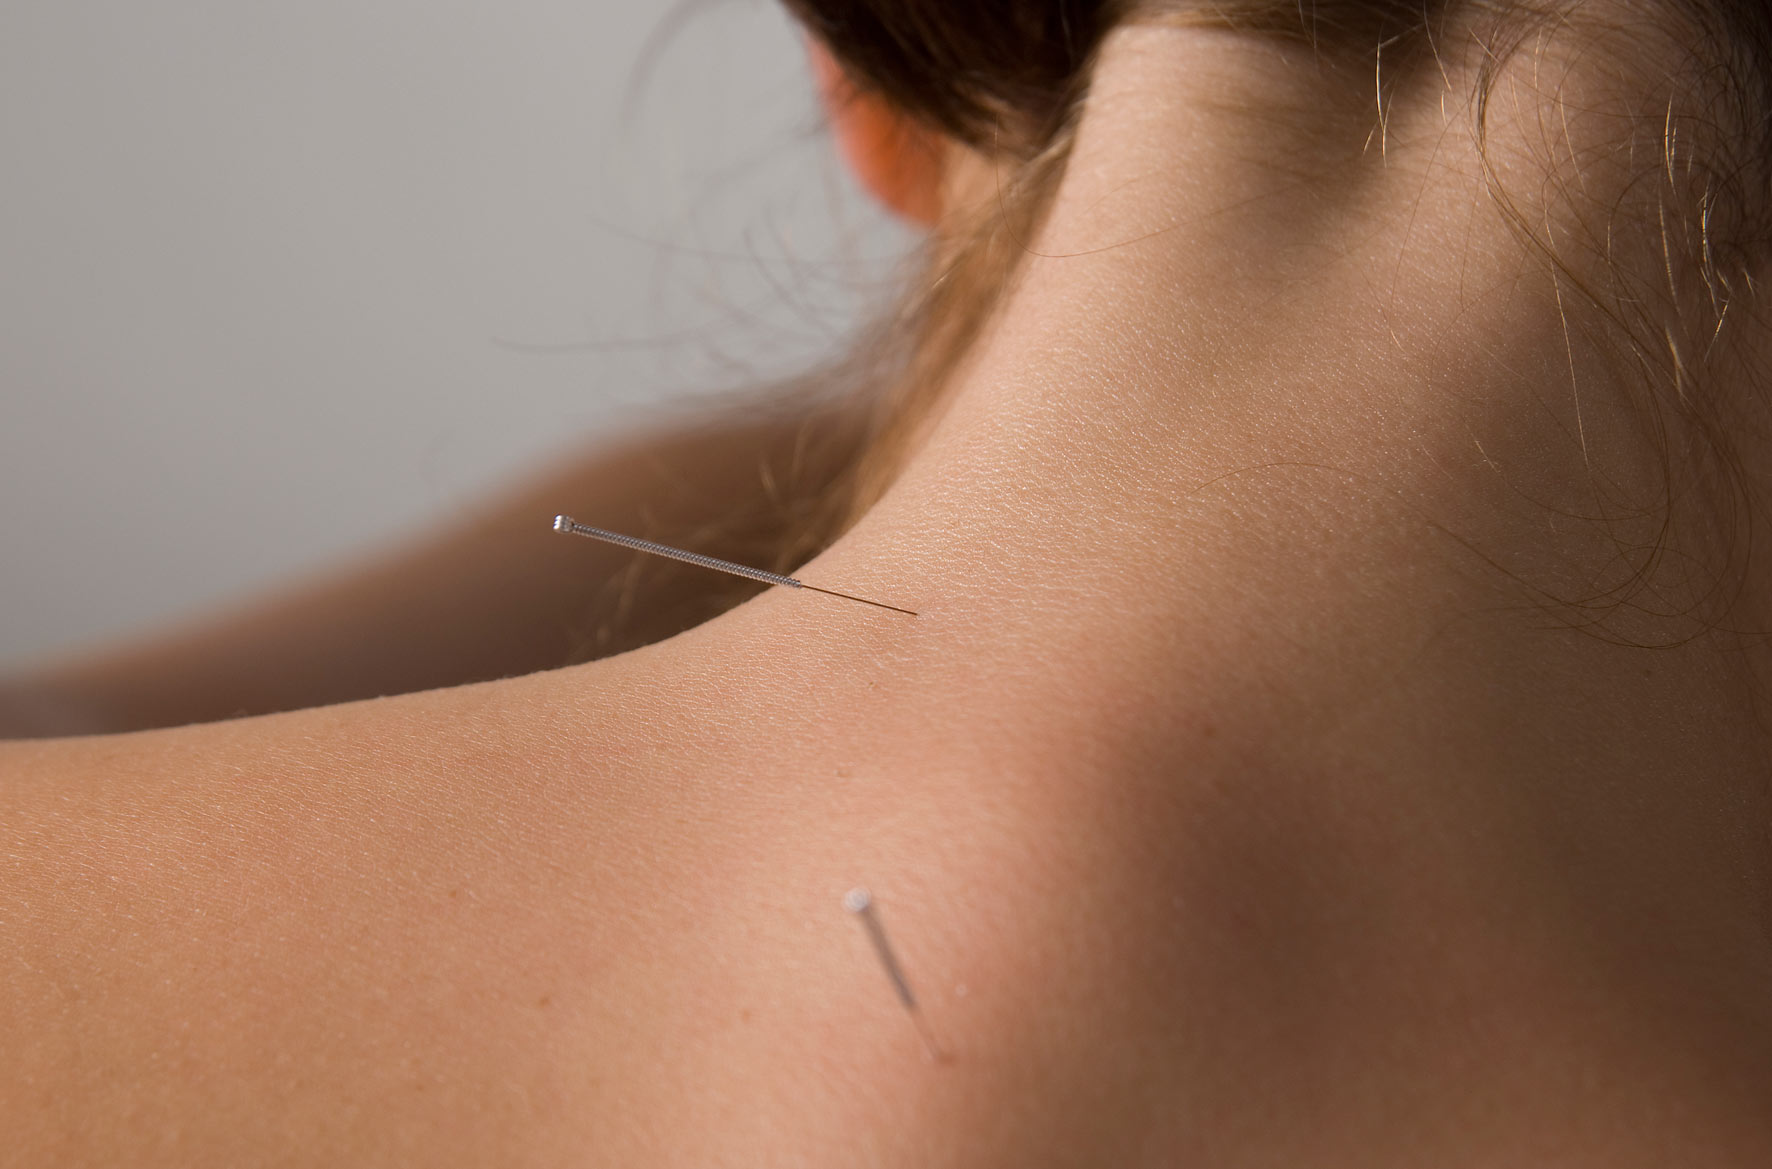 Acupuncture_back-2-normal